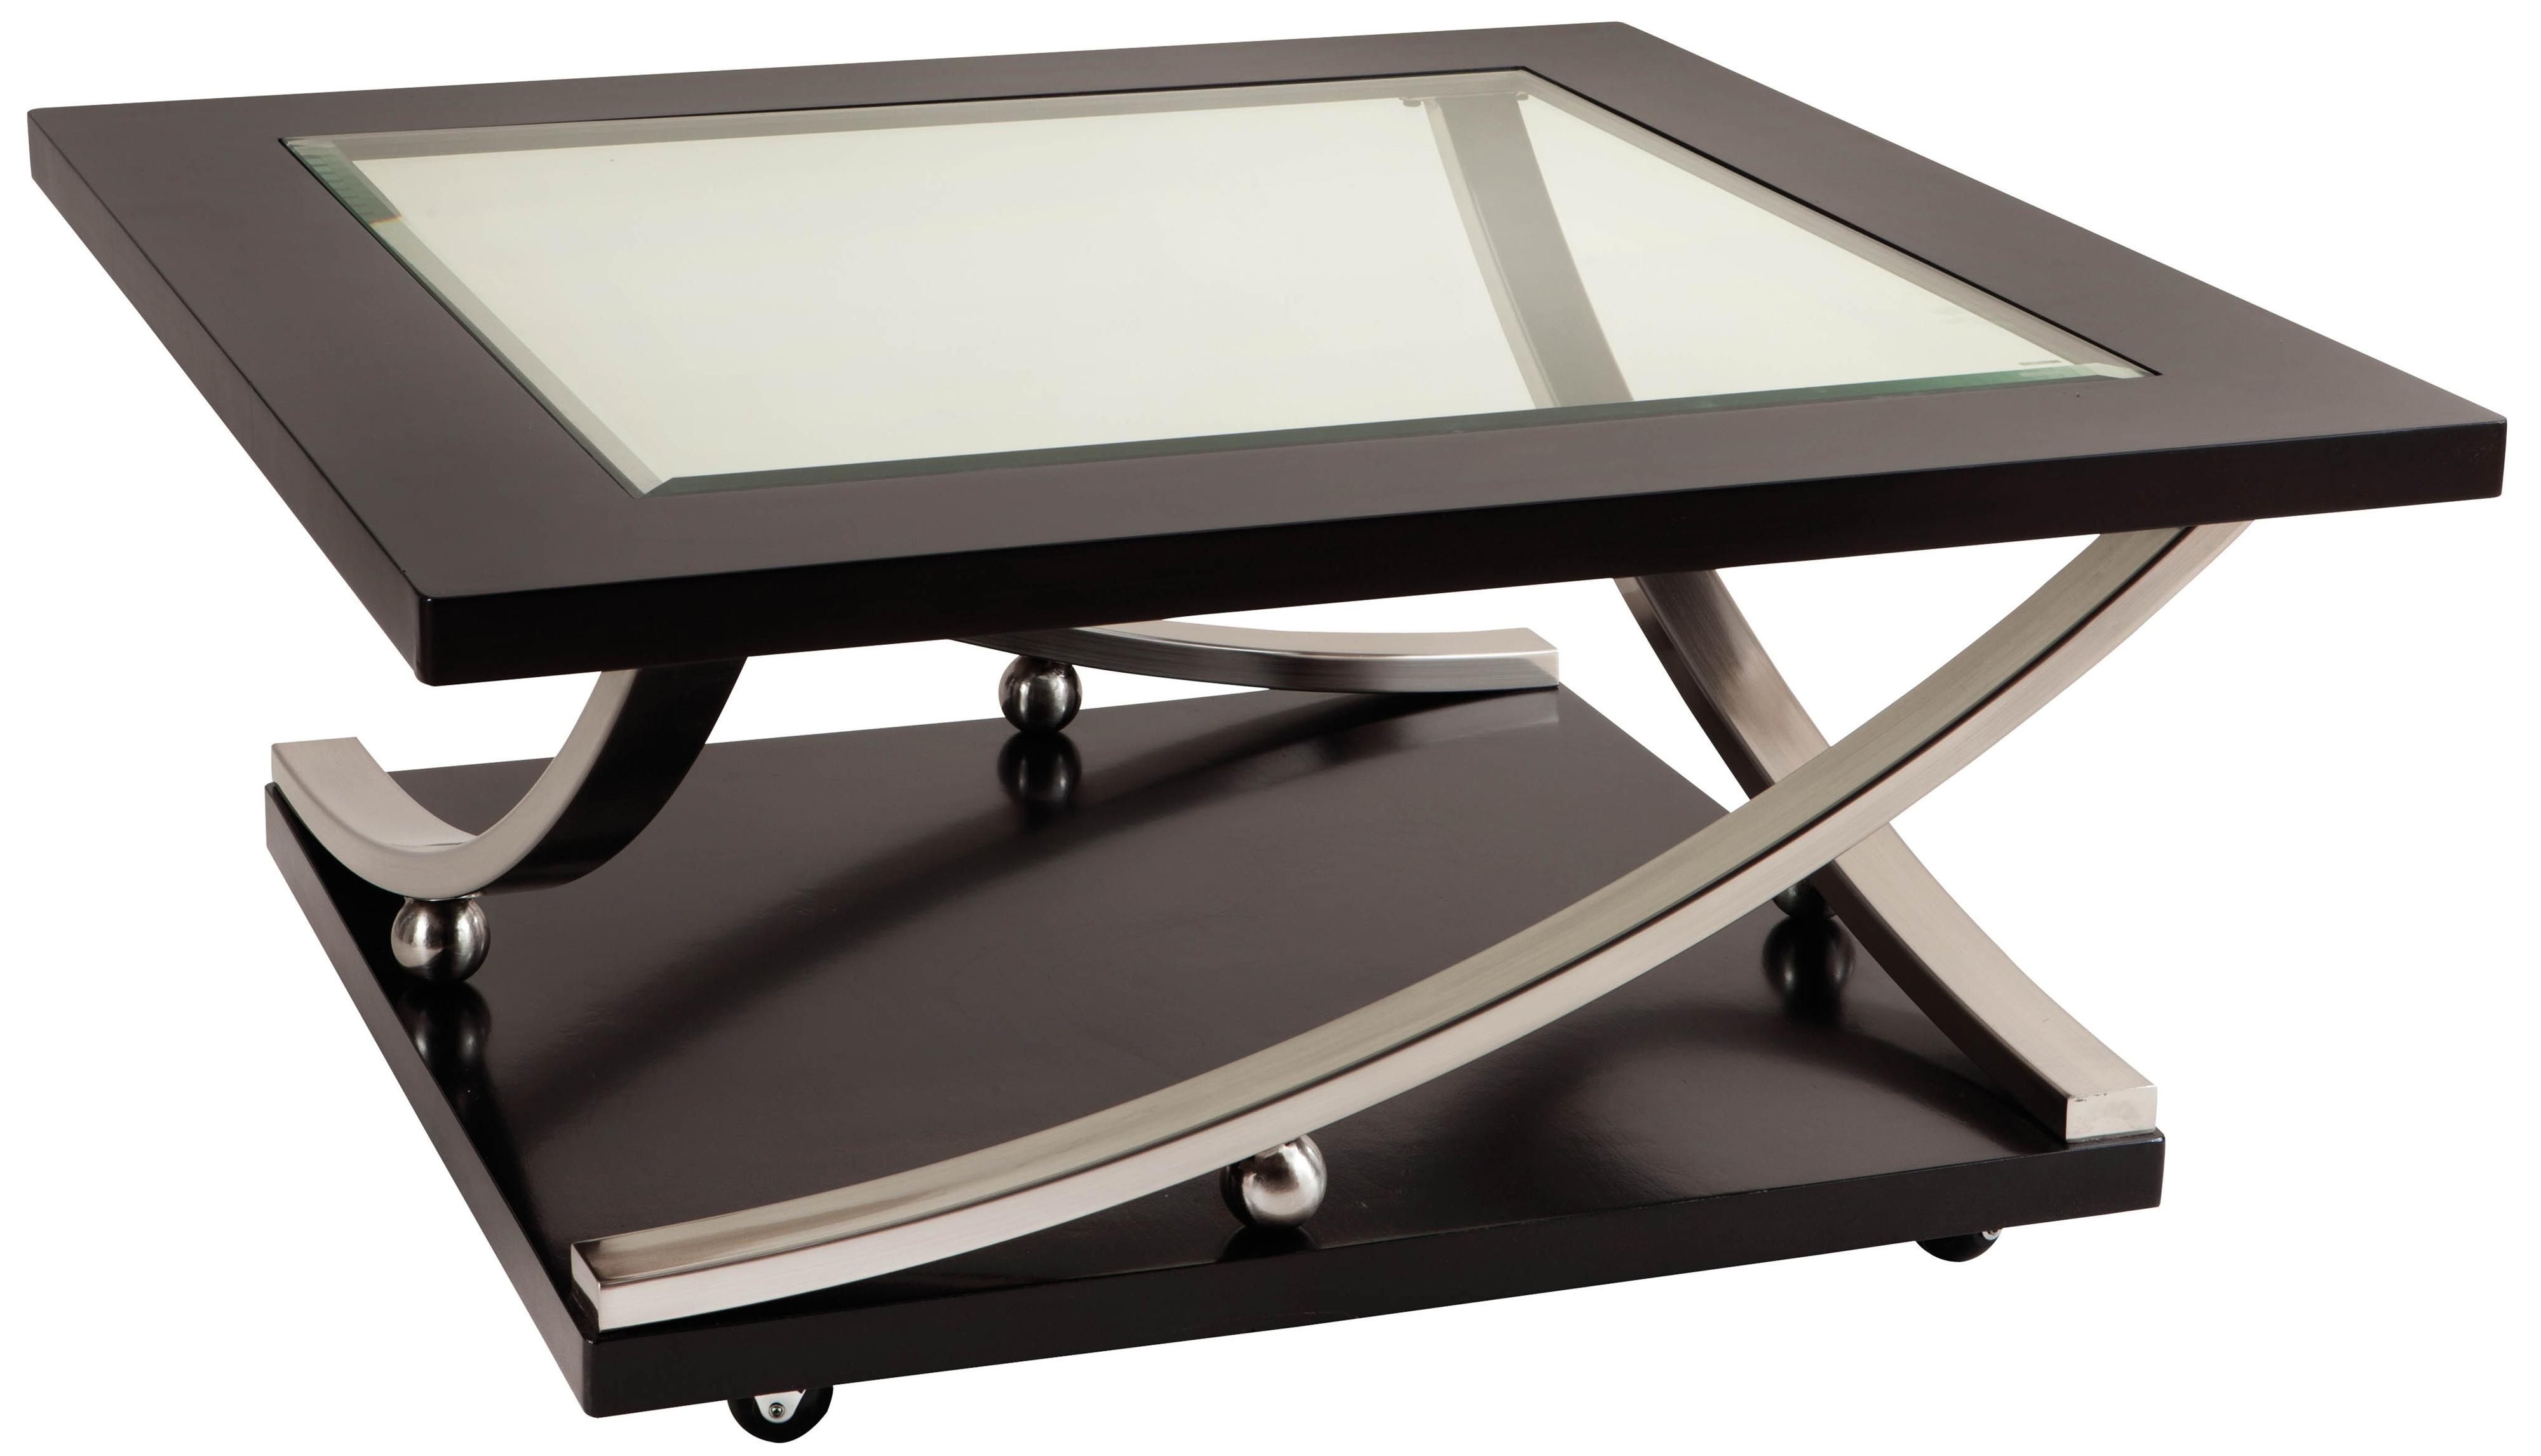 Melrose square glass top cocktail table with casters by standard furniture wolf furniture Collectors coffee table